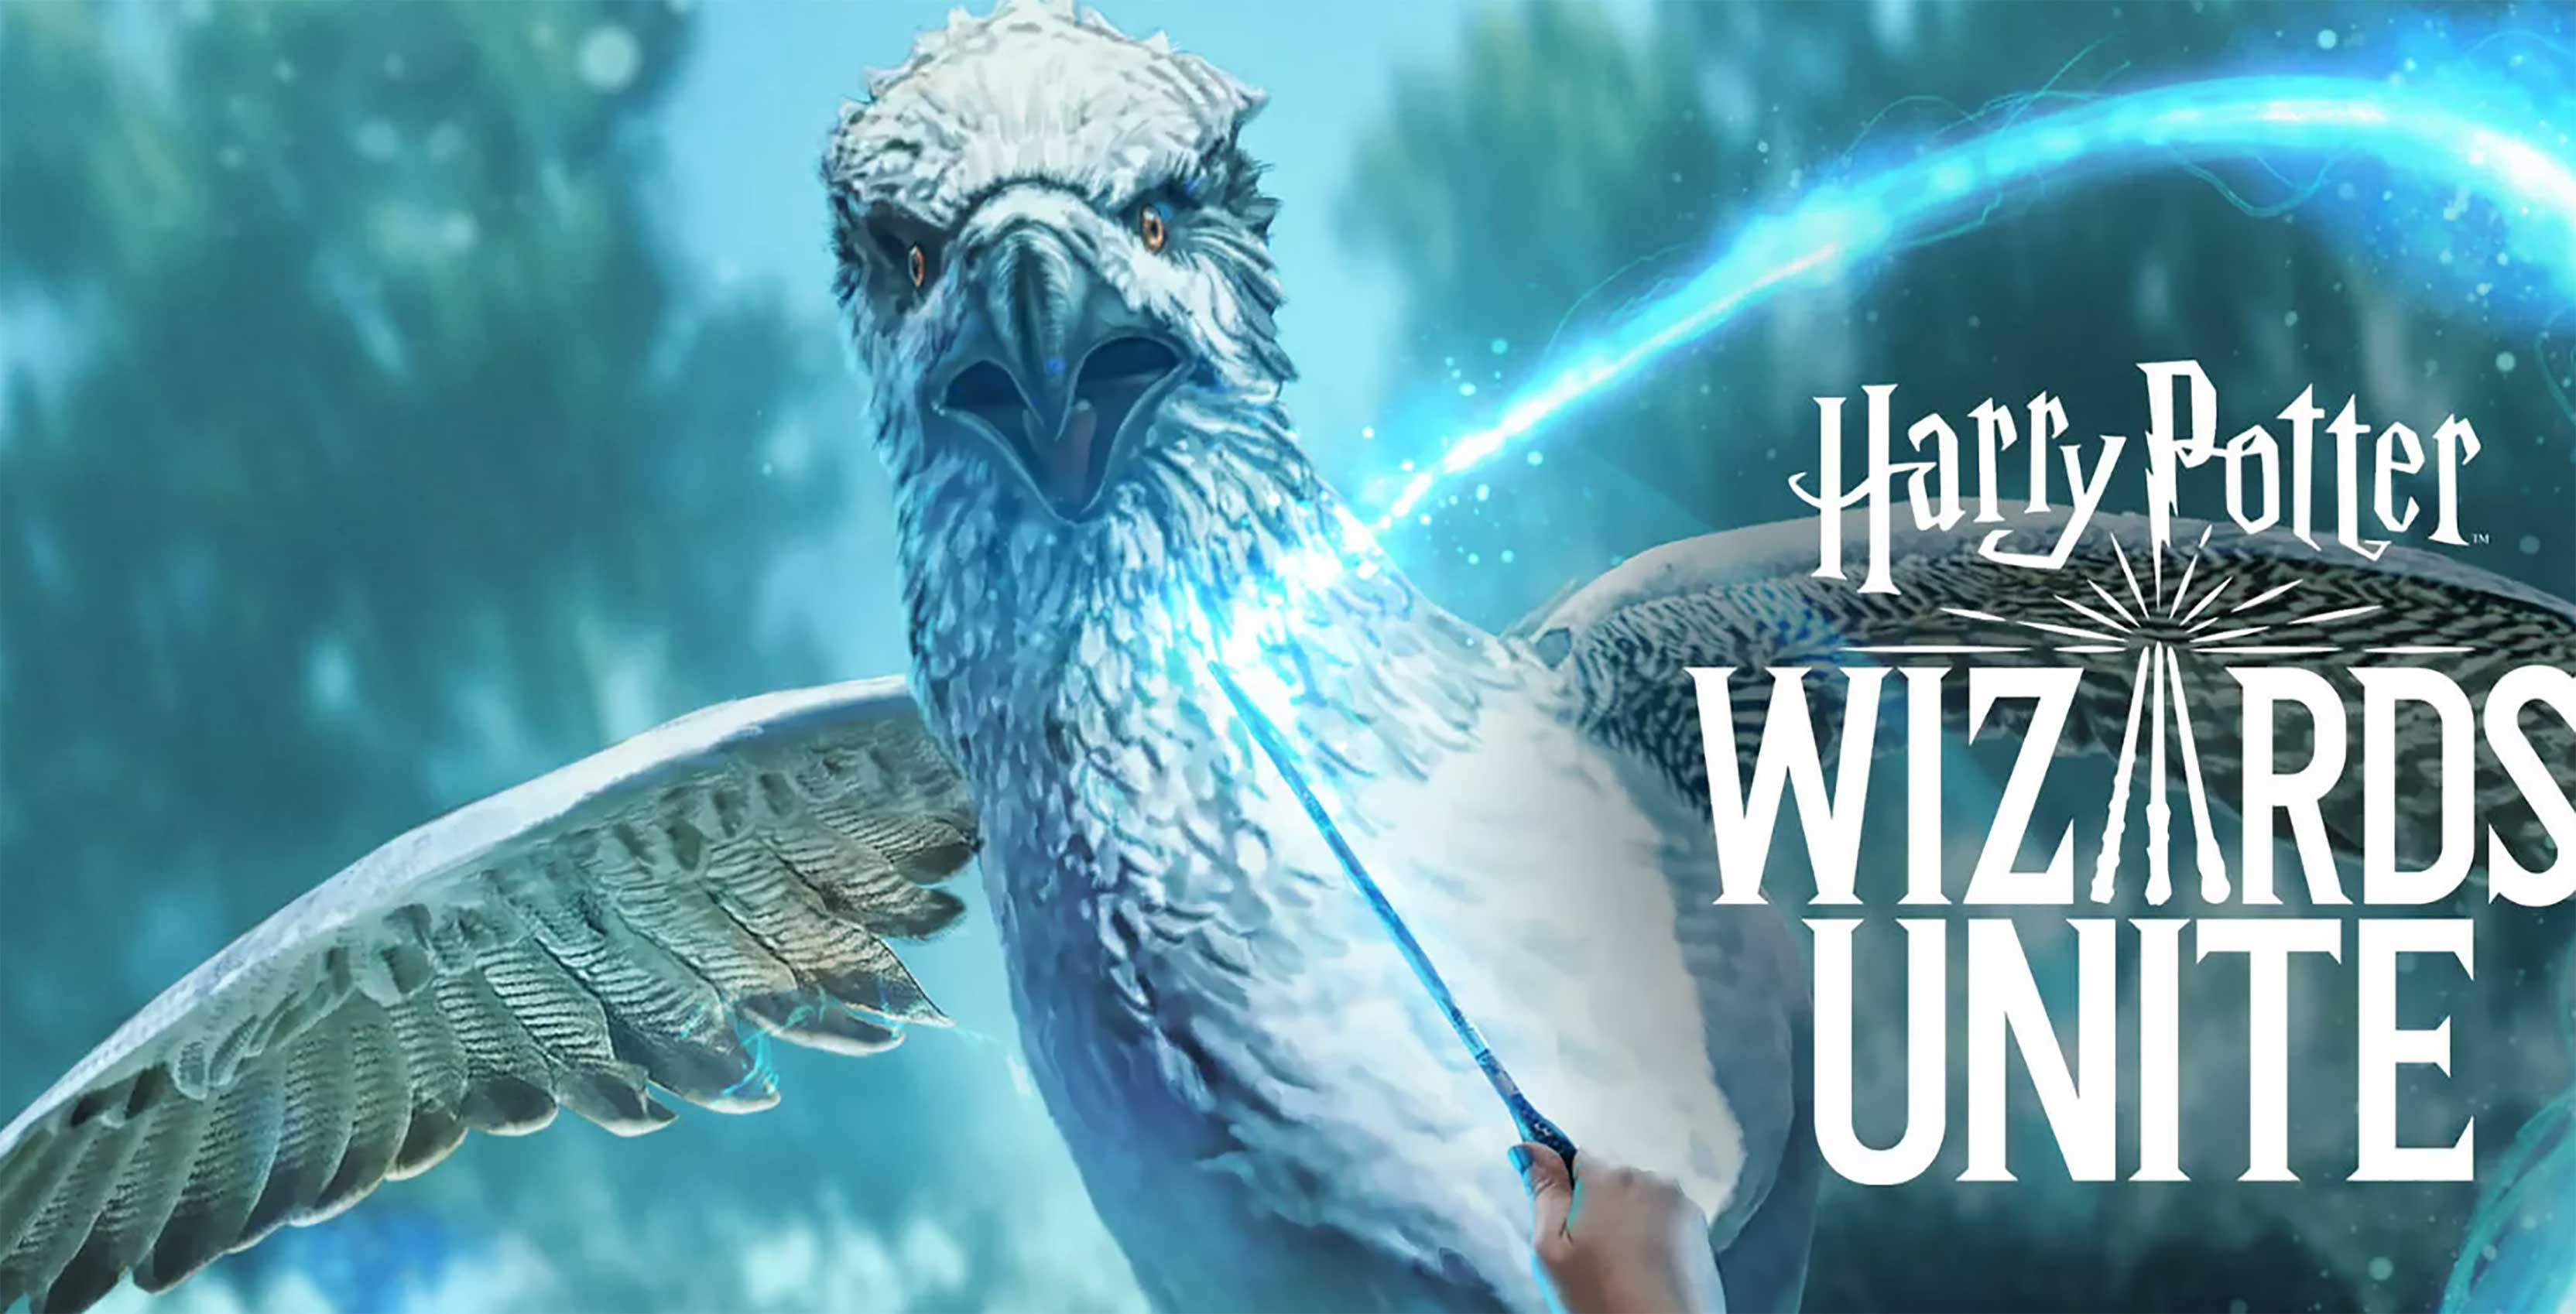 Harry Potter: Wizards Unite Hippogriff